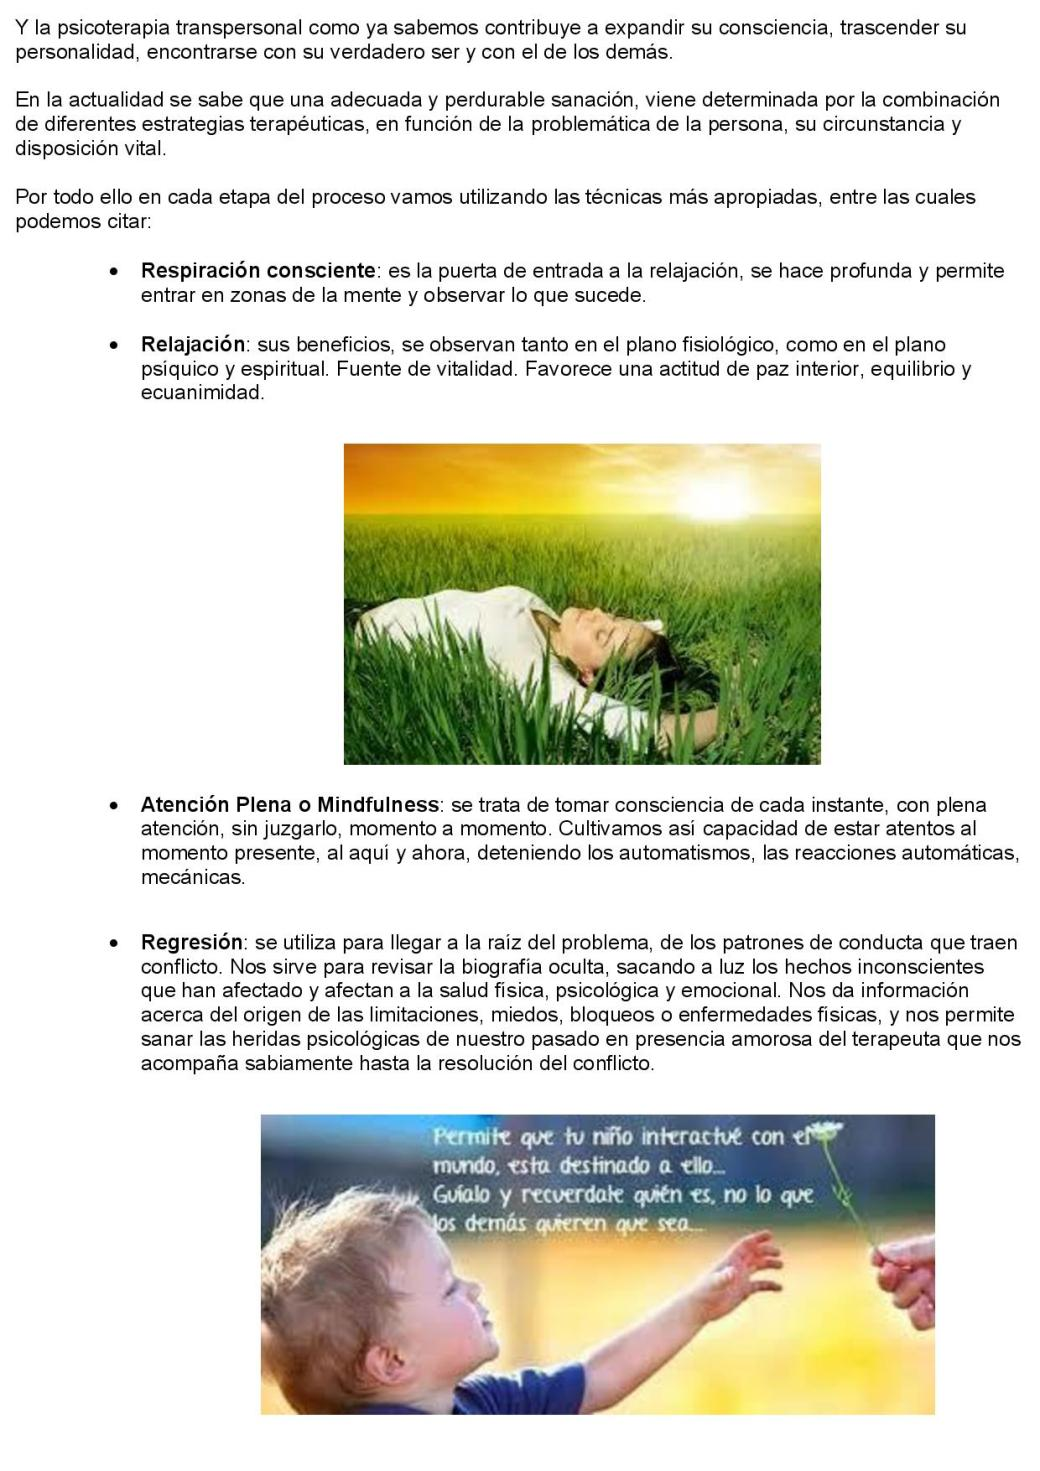 Terapia Transpersonal-page-006